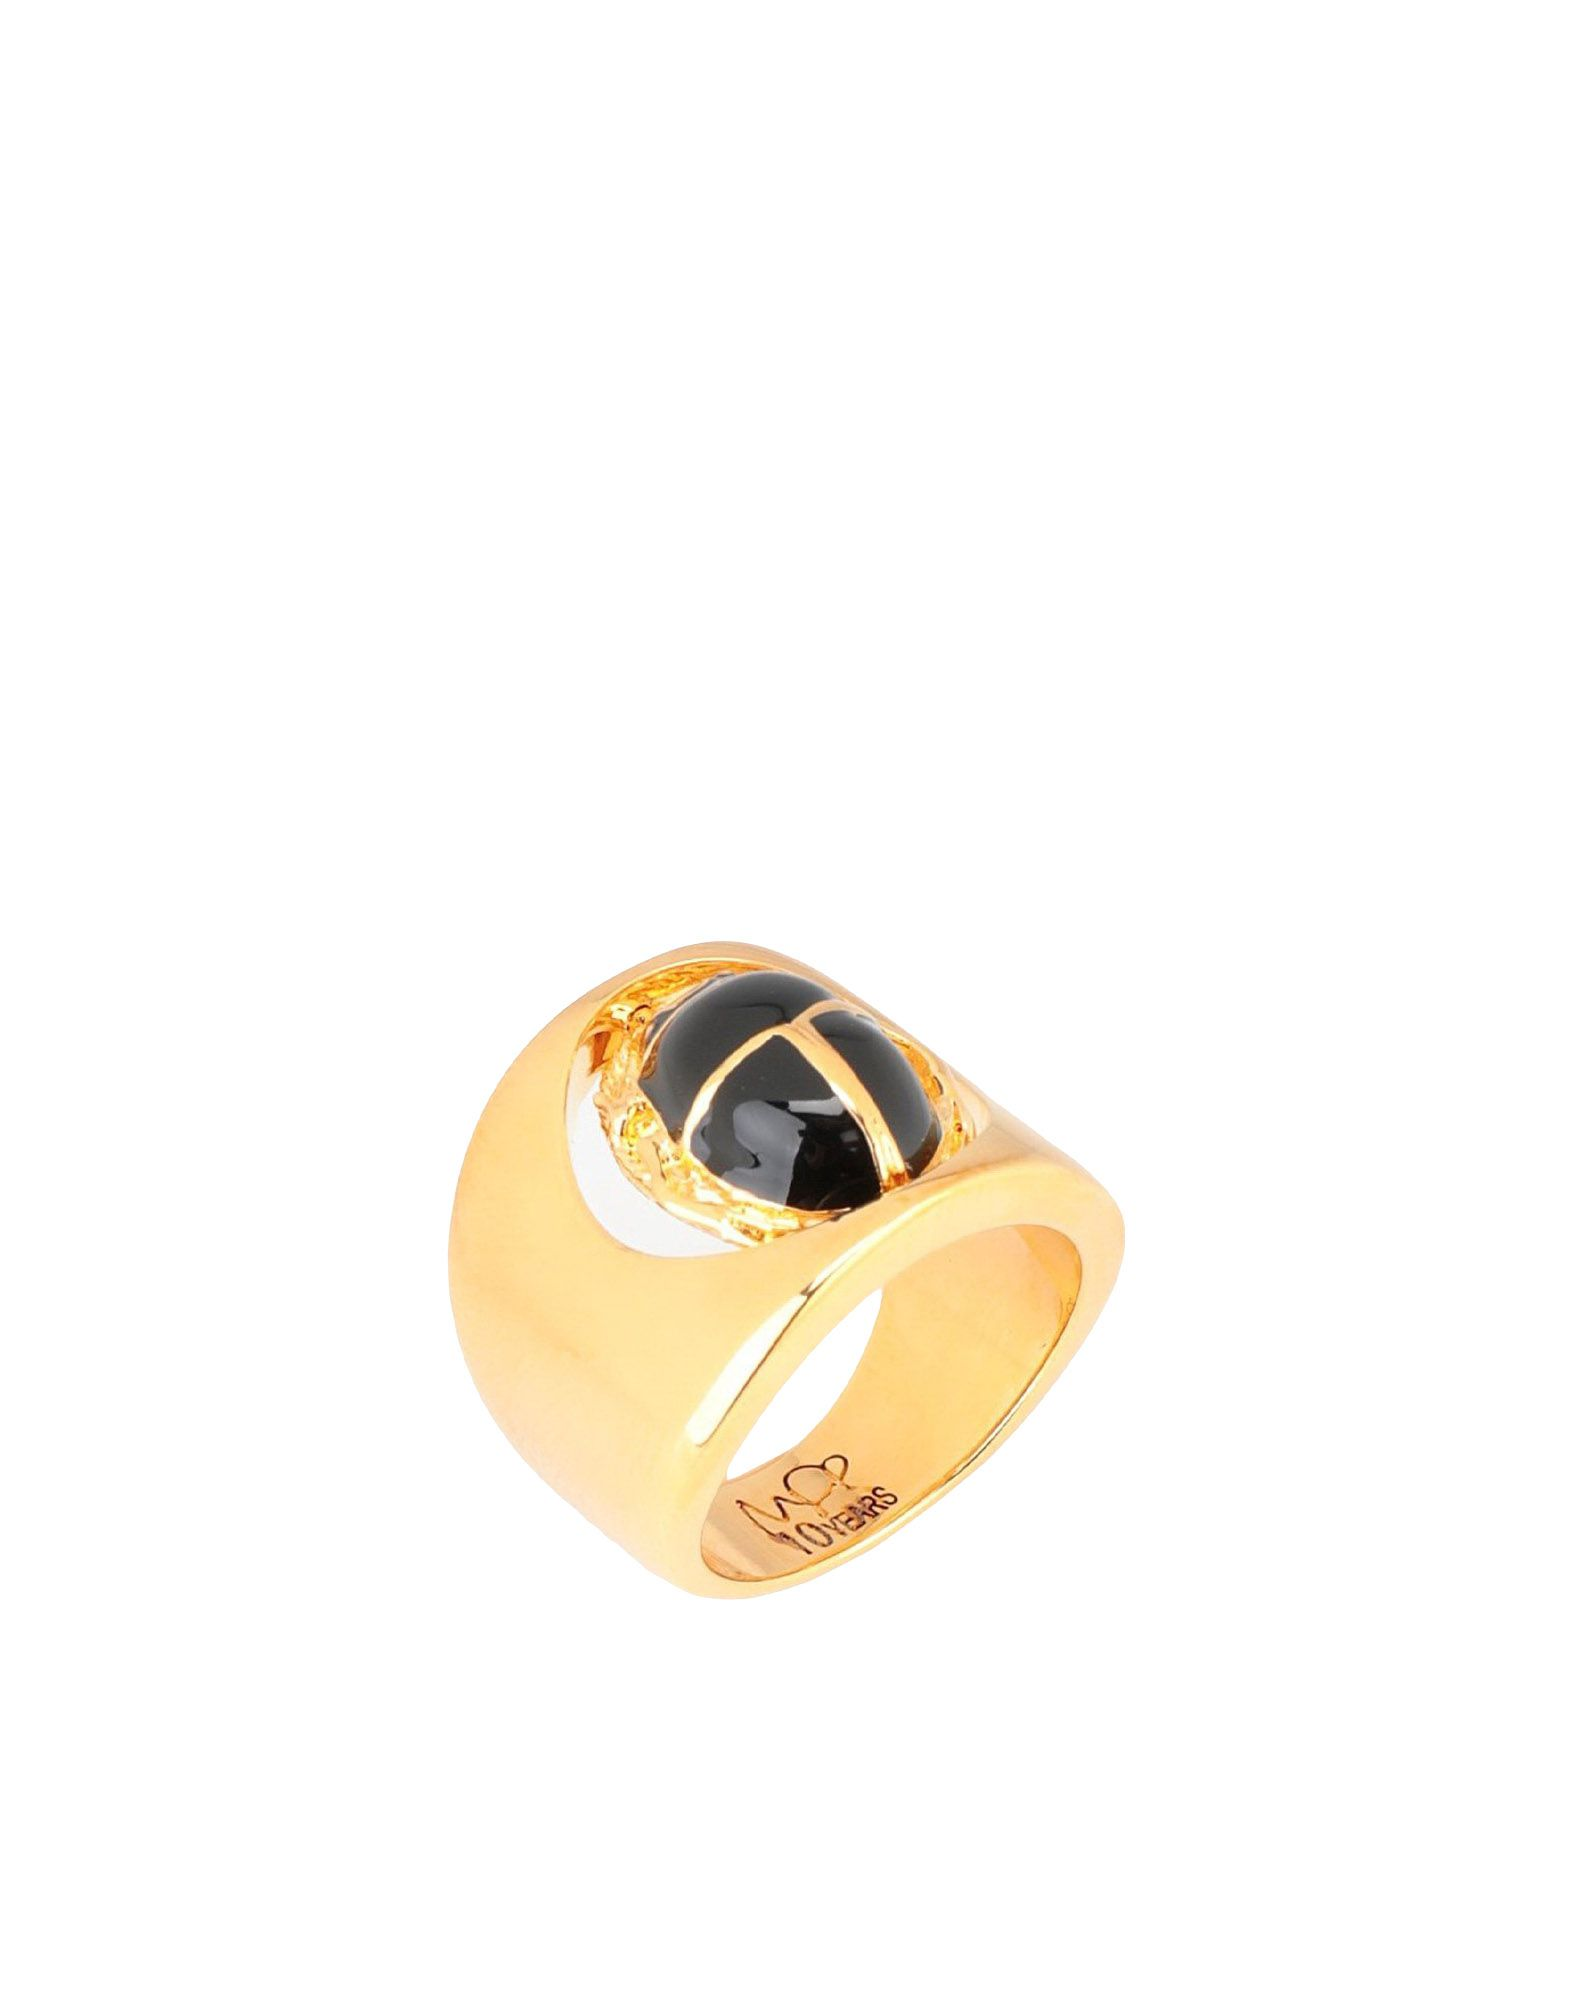 Anello Maria Francesca Pepe The Eternity-Index Ring With Enamelledscarab Charm - Donna - Acquista online su